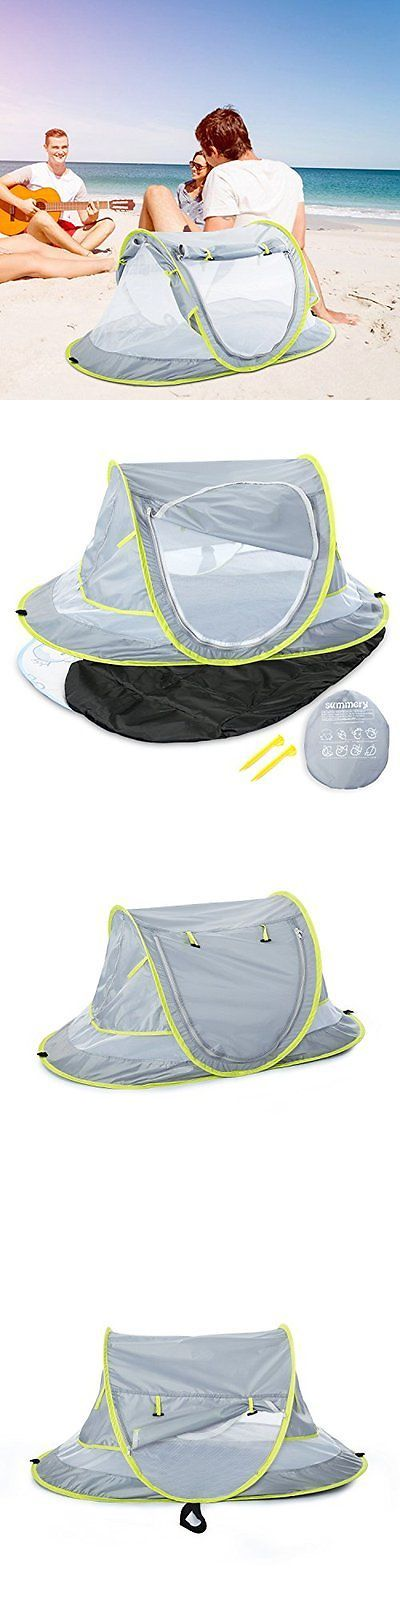 Play Shades and Tents 117033 Large Baby Beach Play Tent C&ing Outdoor Uv Protection Sun  sc 1 st  Pinterest & Play Shades and Tents 117033: Large Baby Beach Play Tent Camping ...